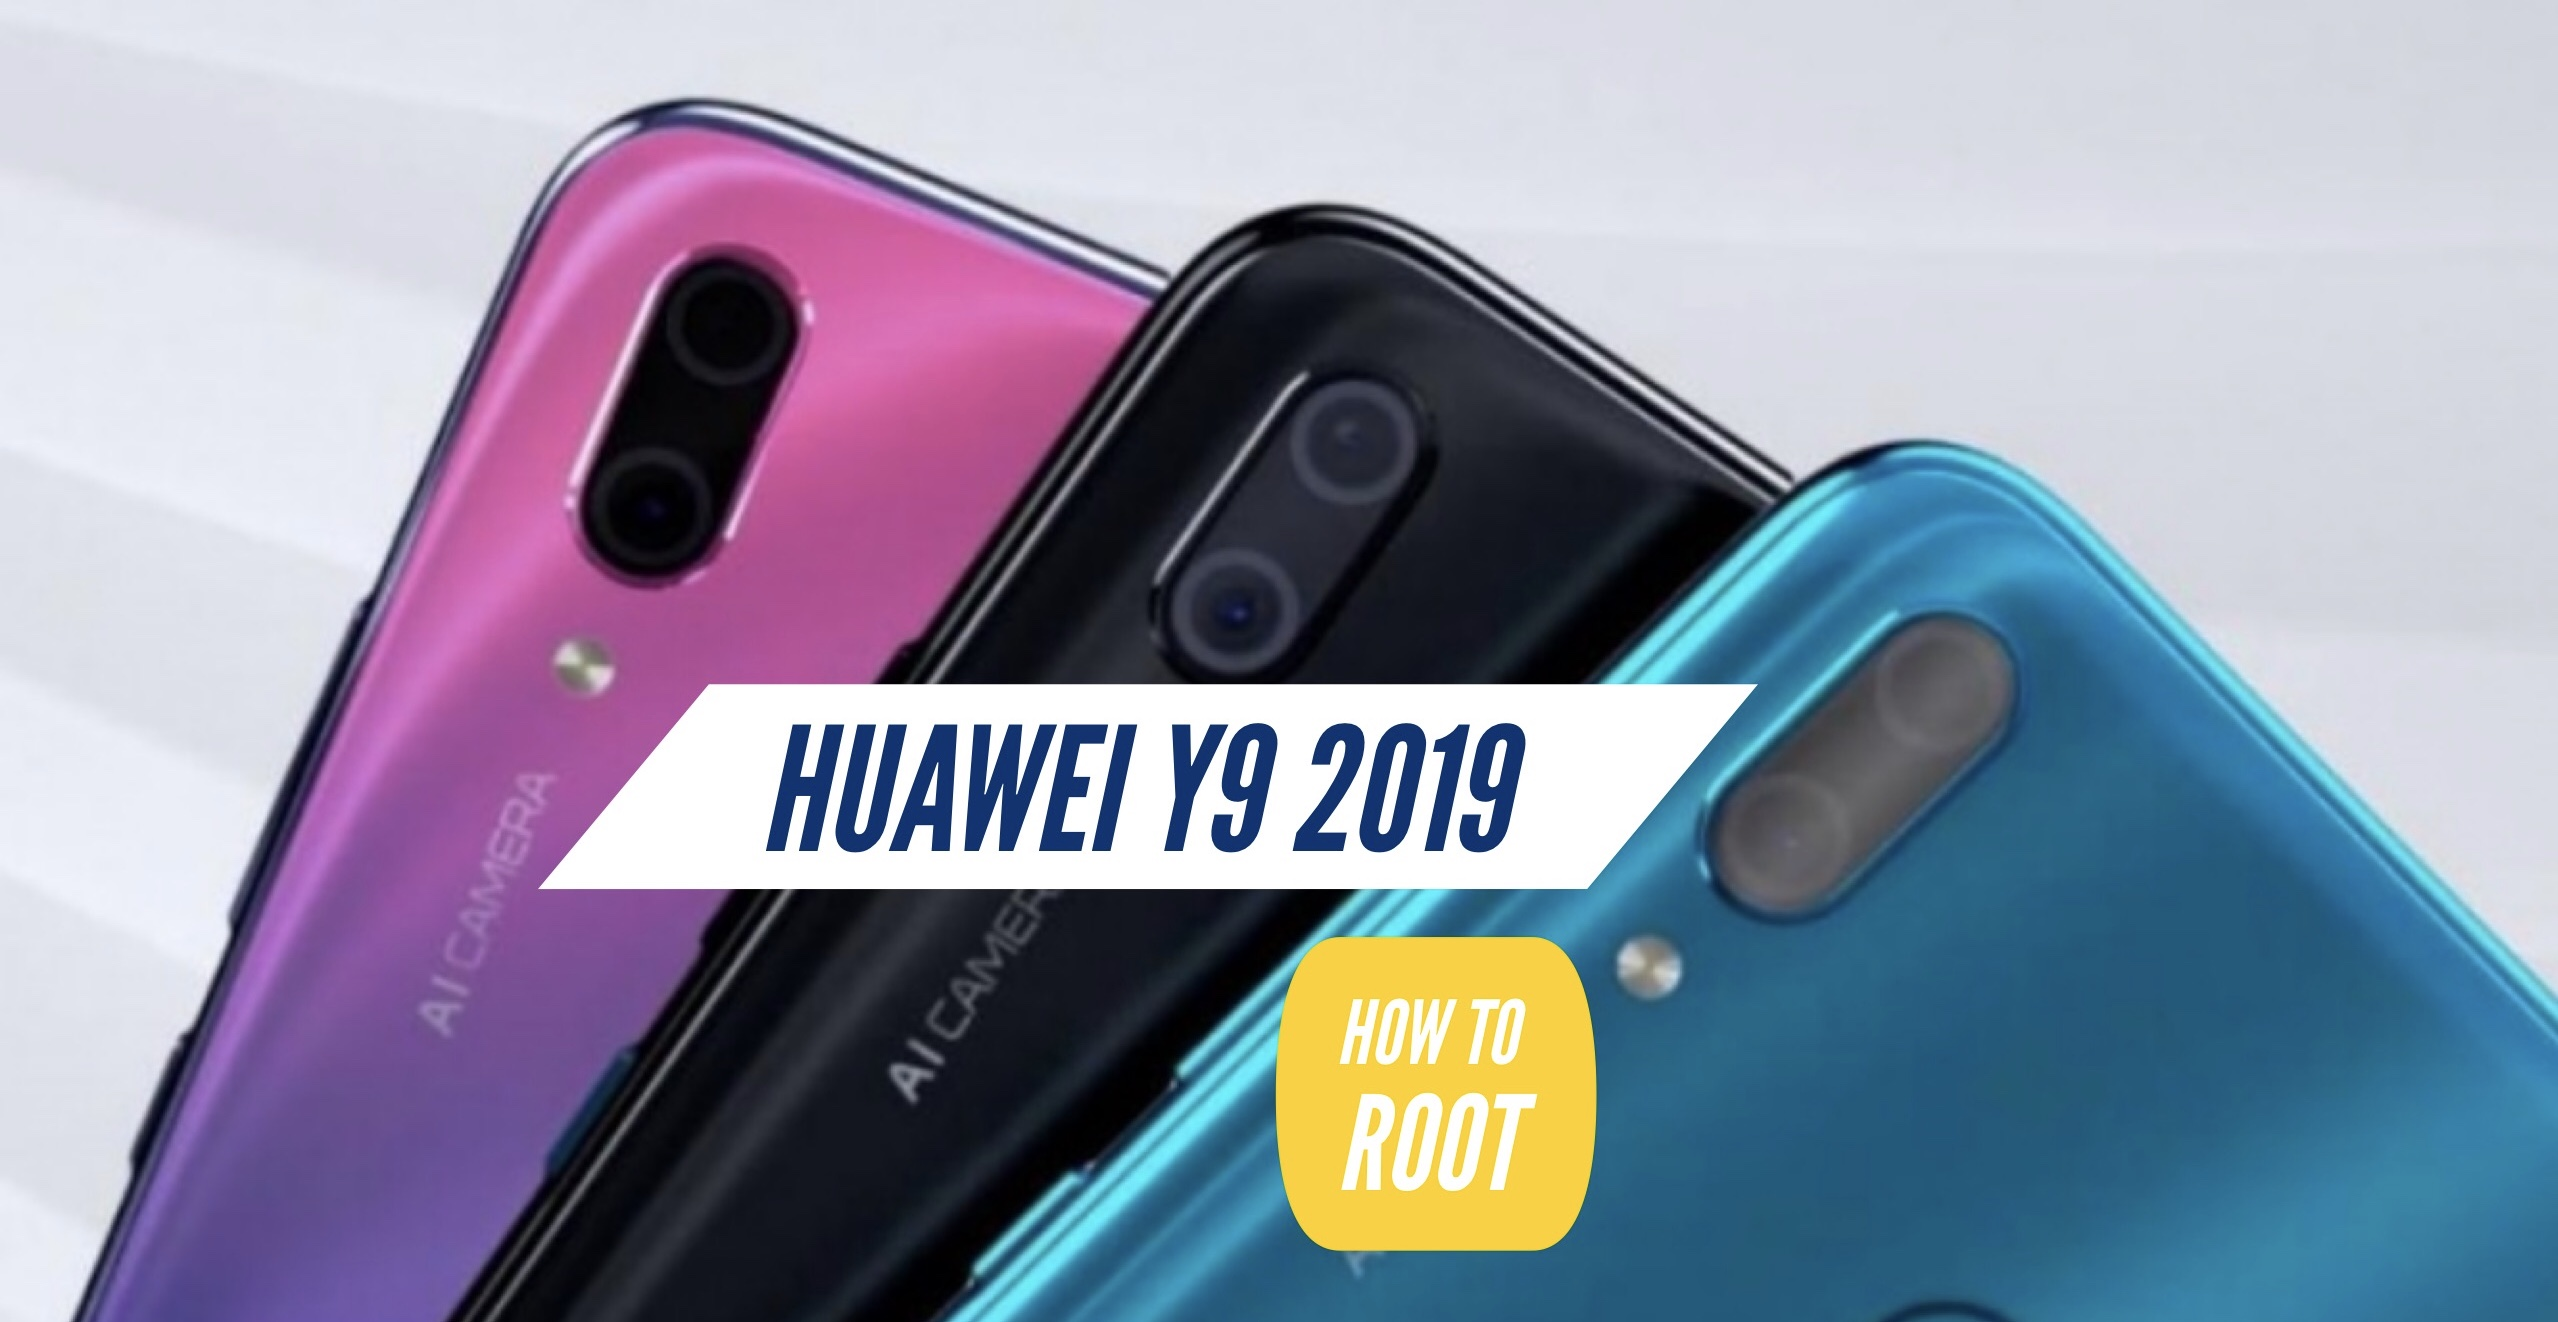 How to Root Huawei Y9 2019? SuperSU & Magisk & Without PC!